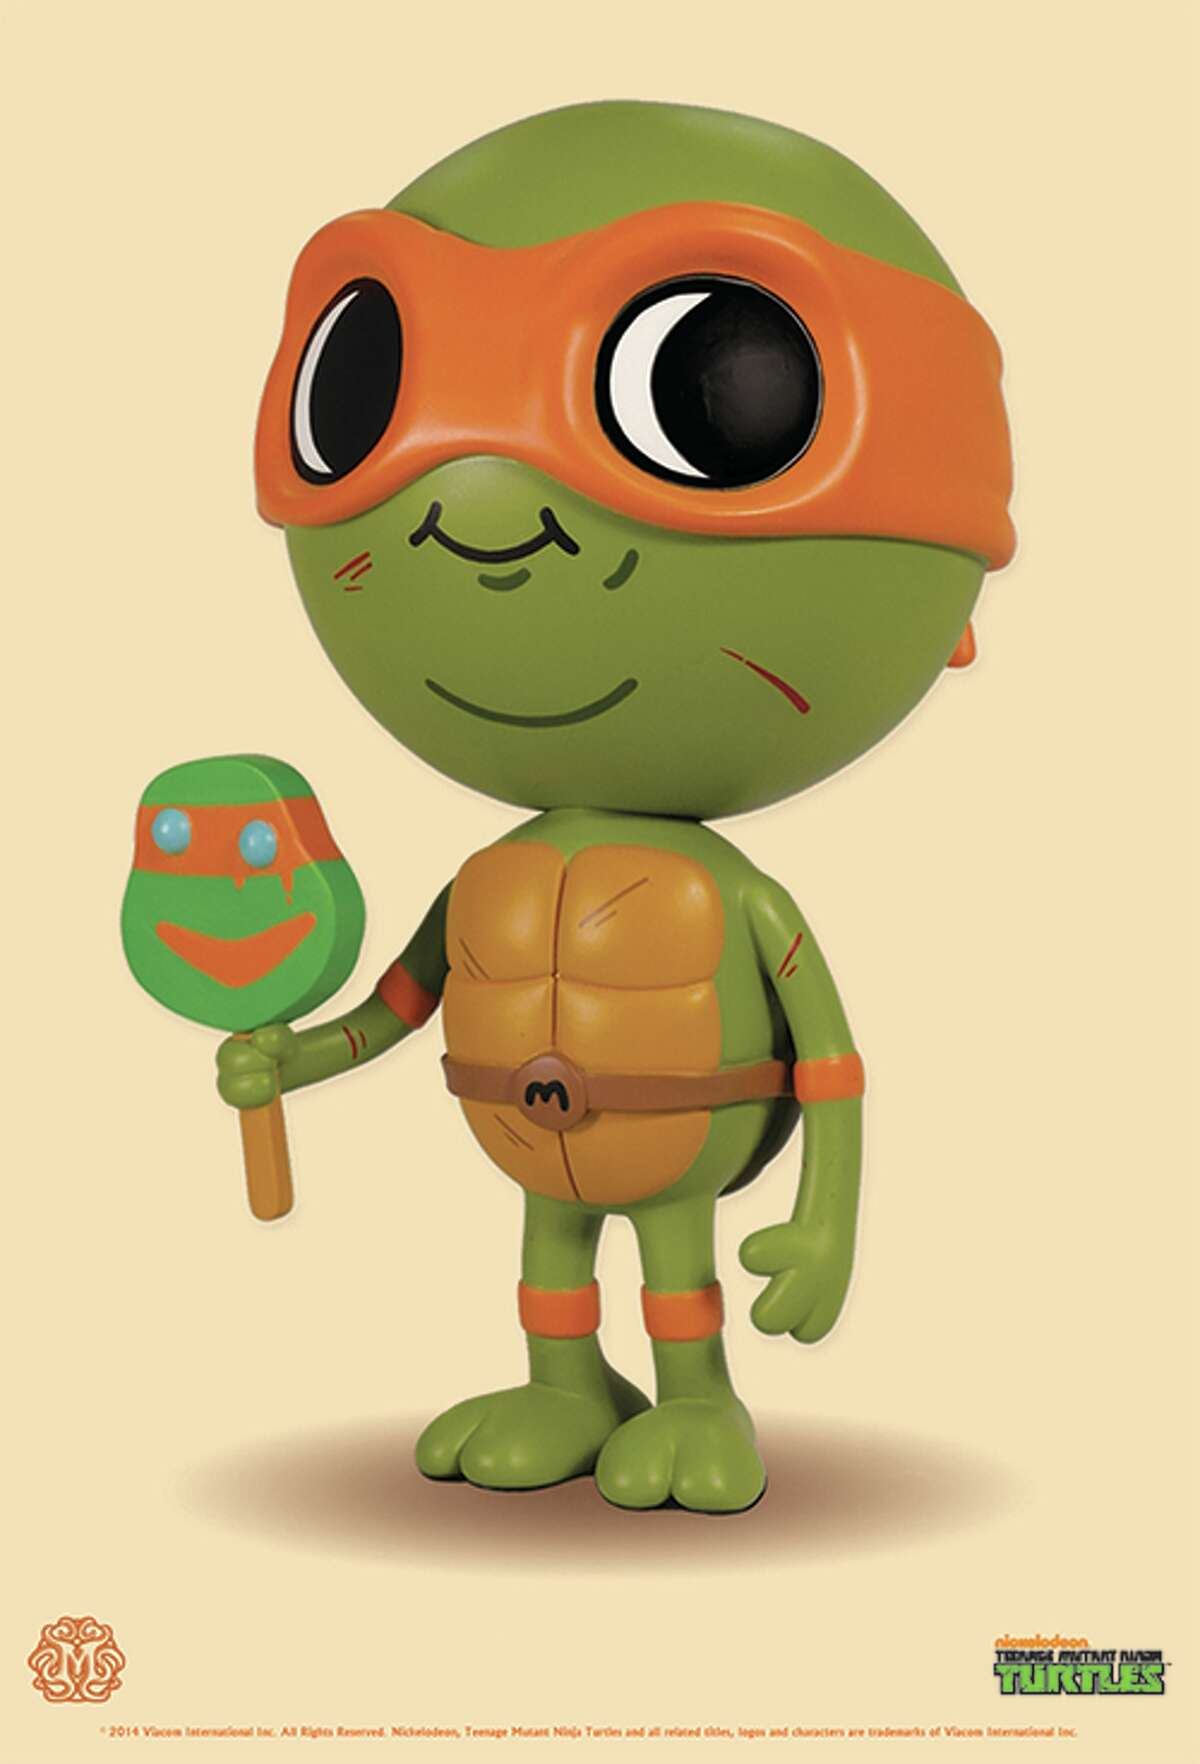 Lil Mikey Michaelangelo toy of Teen-age Mutant Ninja Turtle fame, will be among the pop culture toys being unveiled this week by Austin-based Mondo.